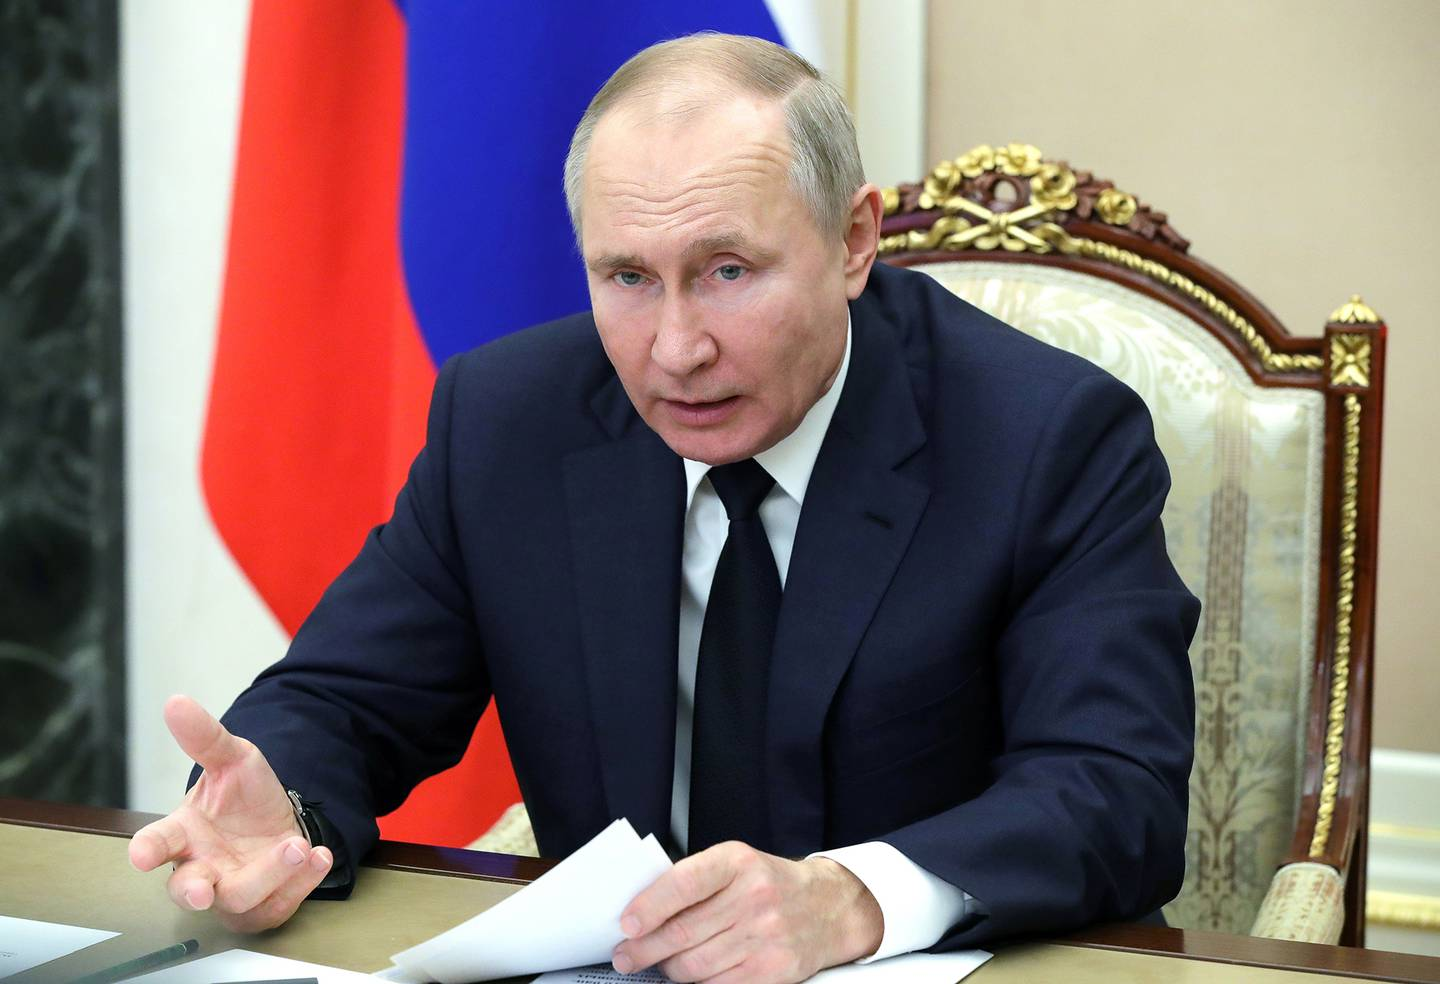 Russian President Vladimir Putin leads a meeting via video conference in Moscow on Feb. 1, 2021.